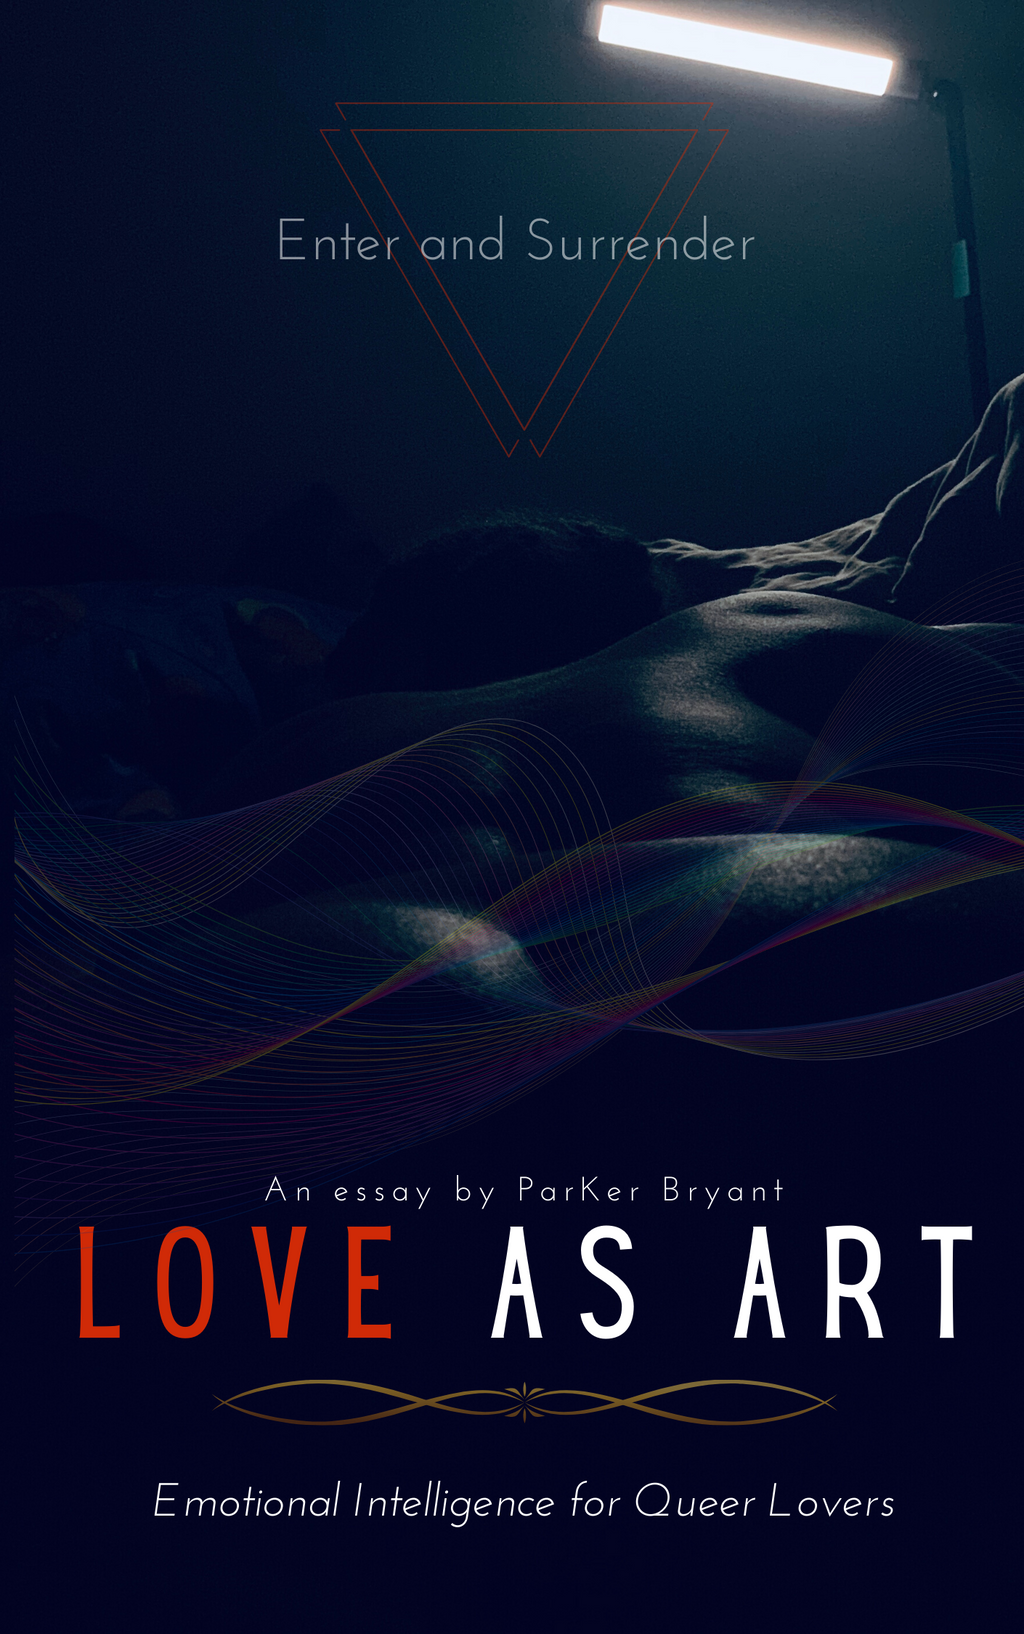 Love As Art- Emotional Intelligence for Queer Lovers